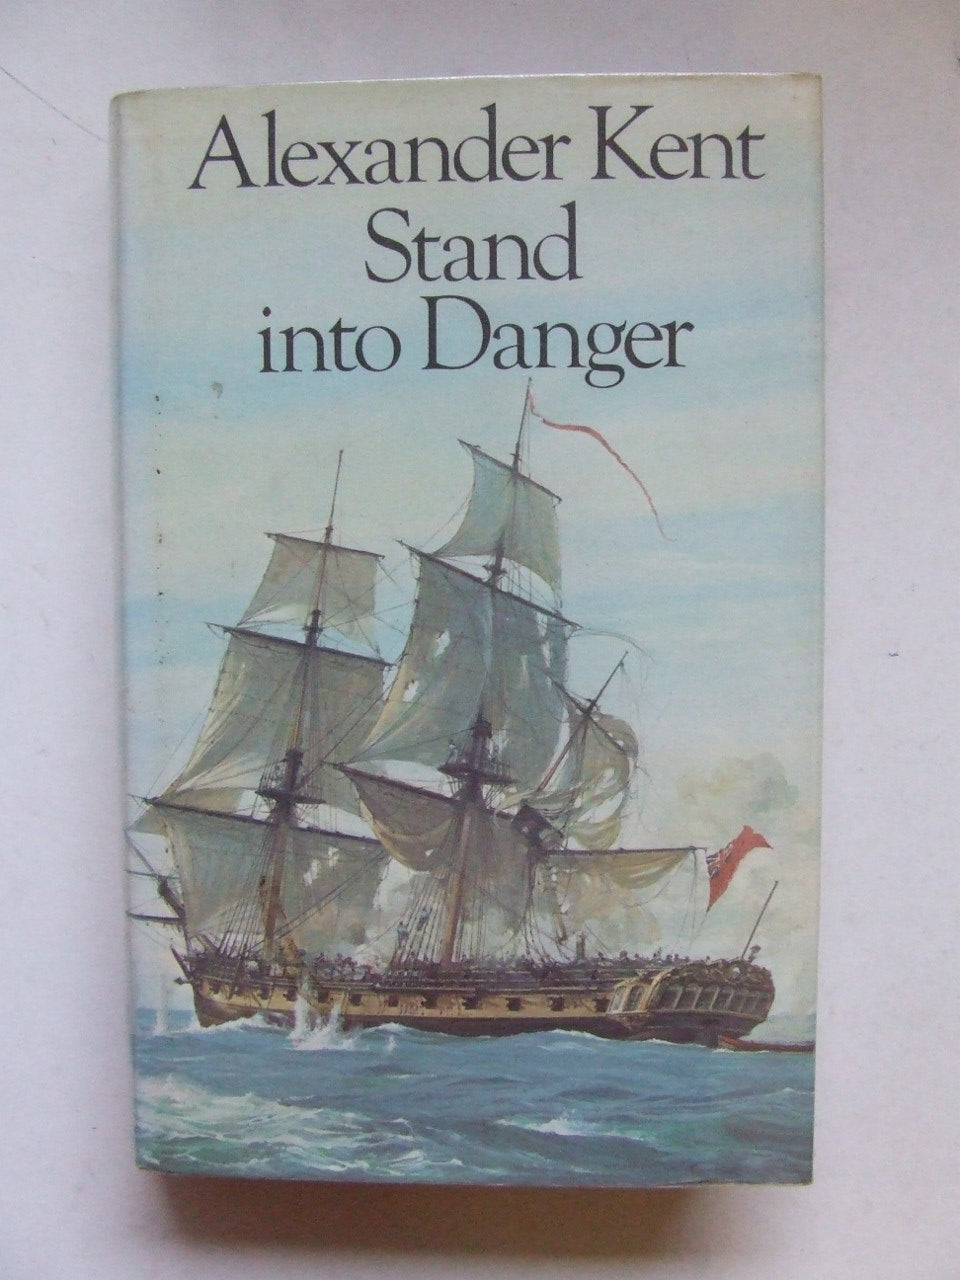 Stand into Danger  -  1st edition